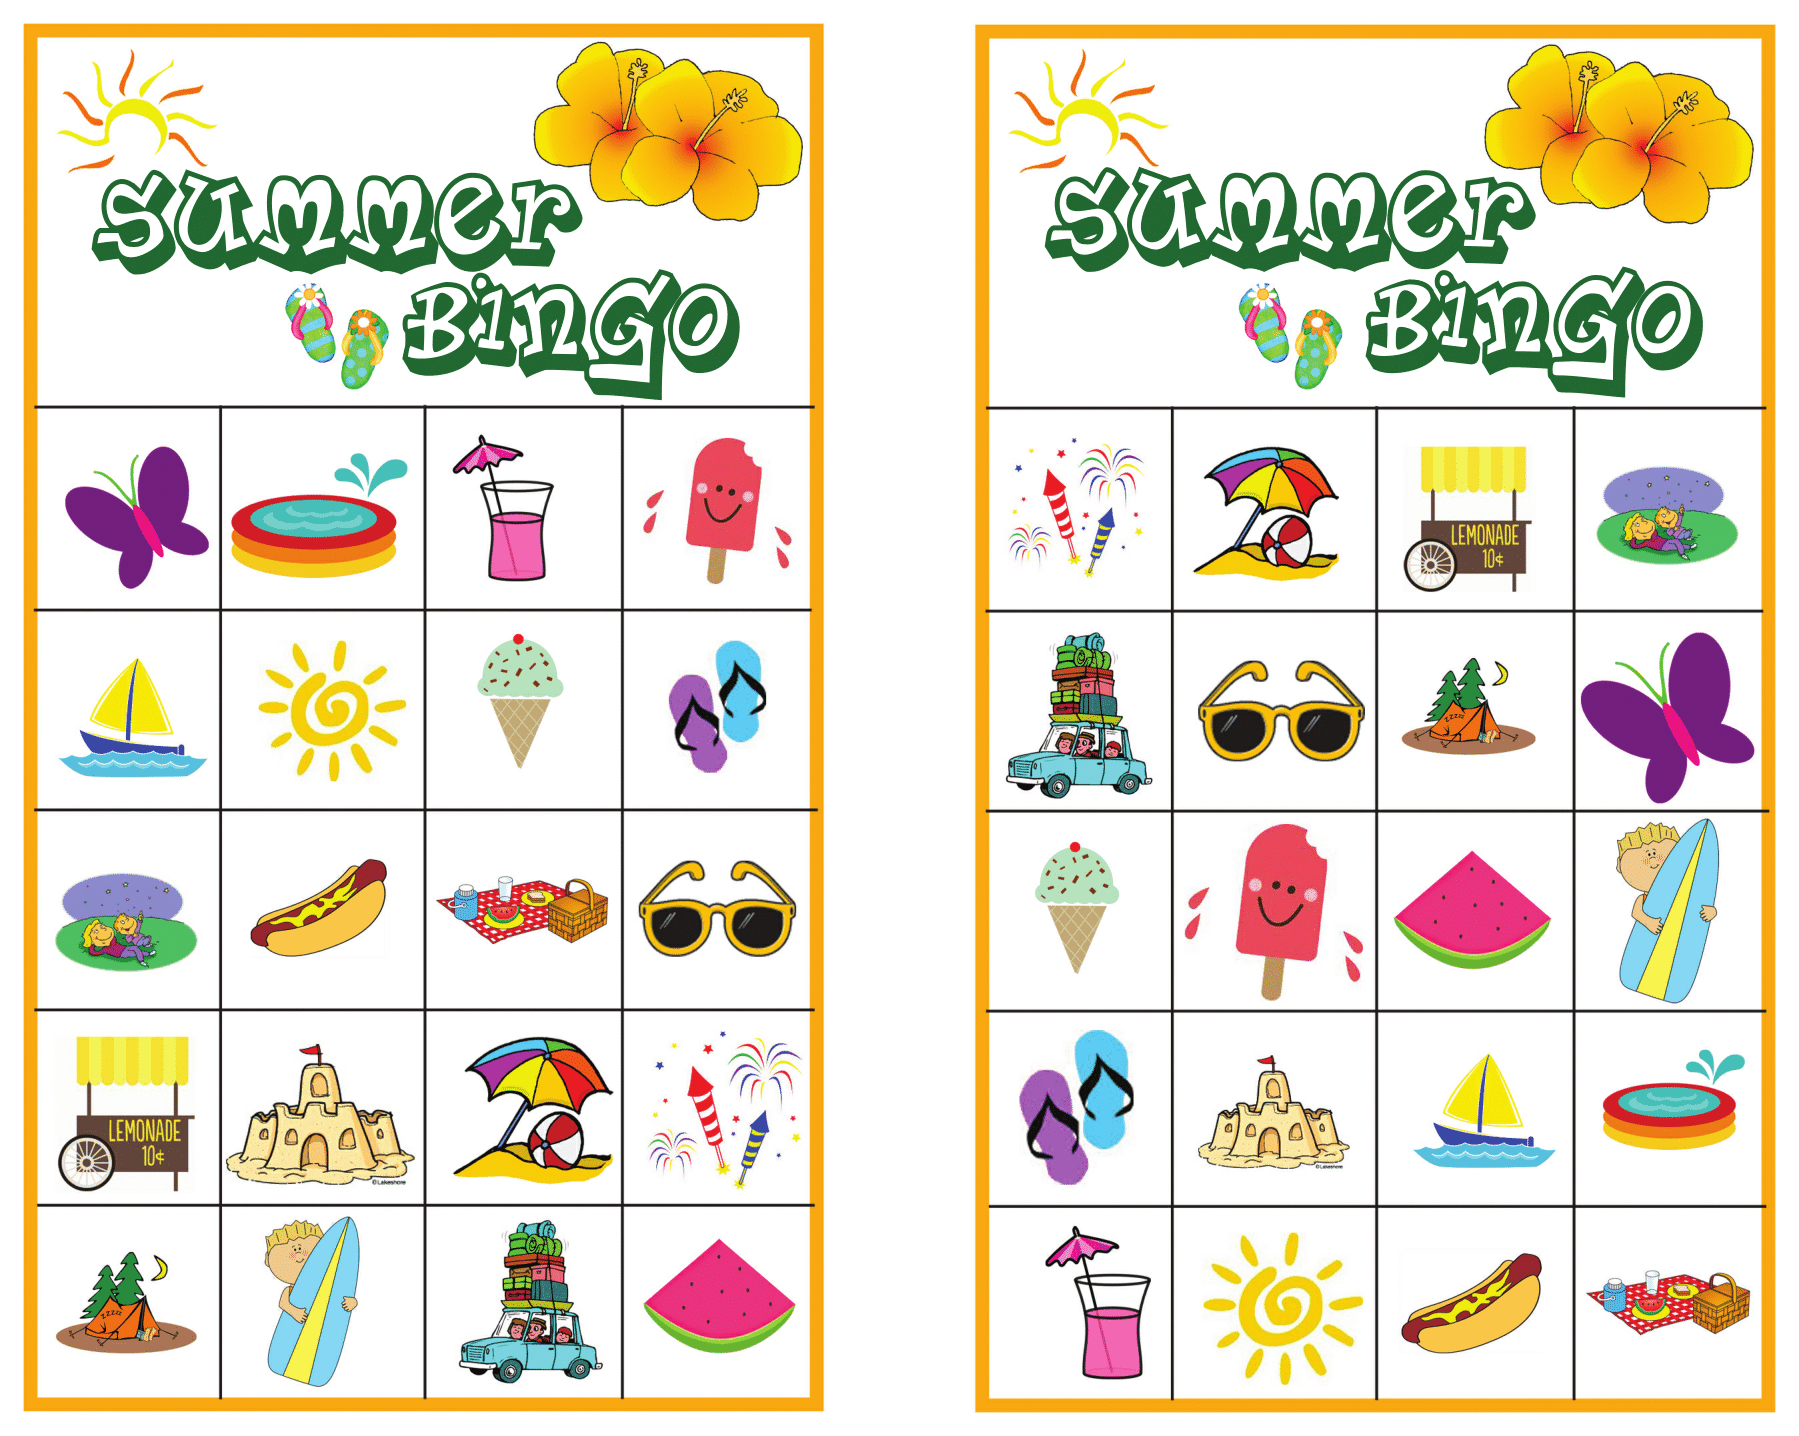 Summer Bingo Game With Free Printables - Free Printable Bingo